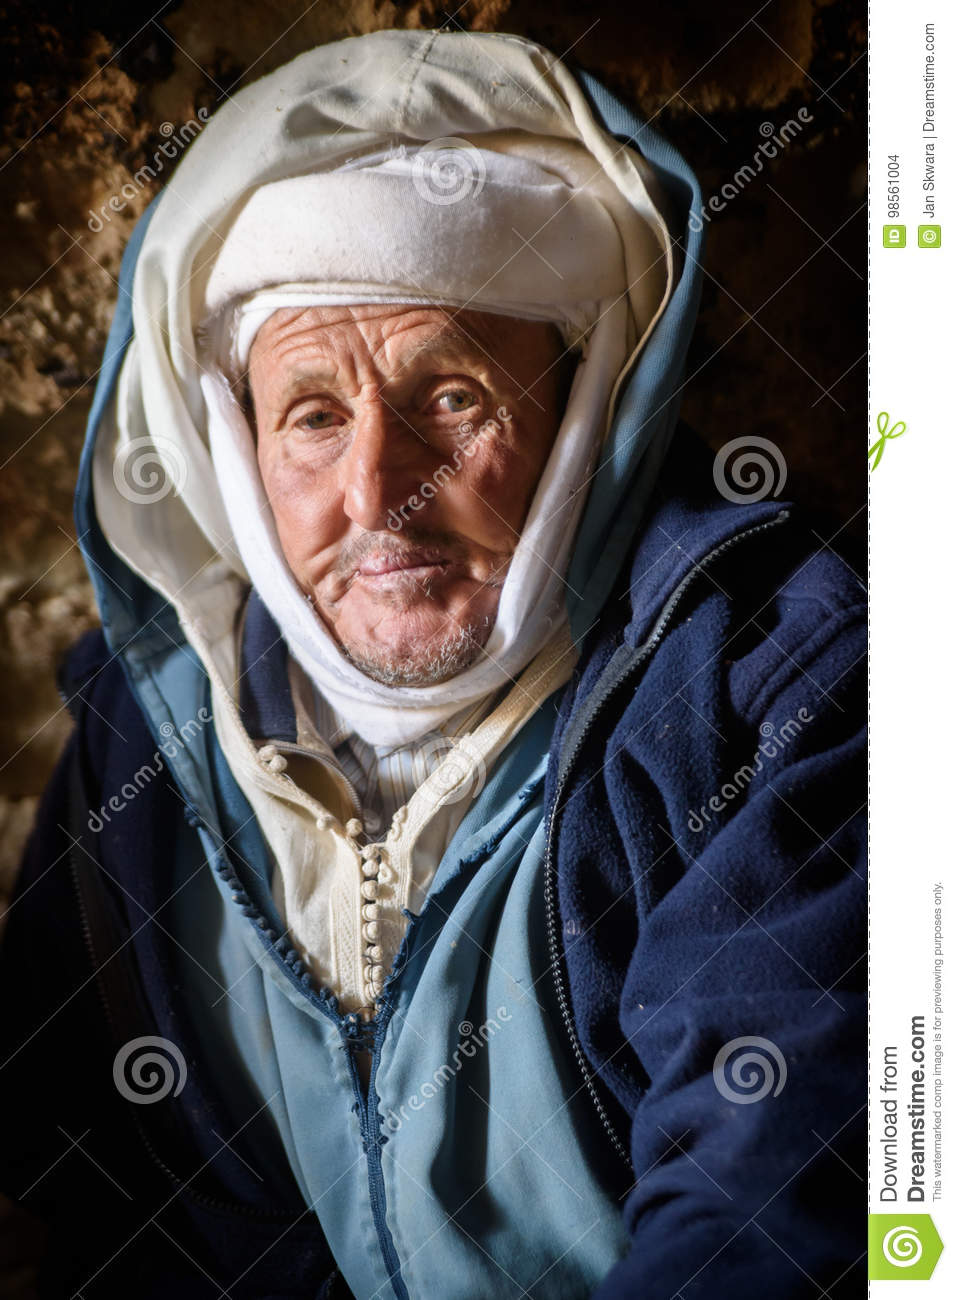 Nomad man living in the cave, Nomad Valley, Atlas Mountains, Morocco